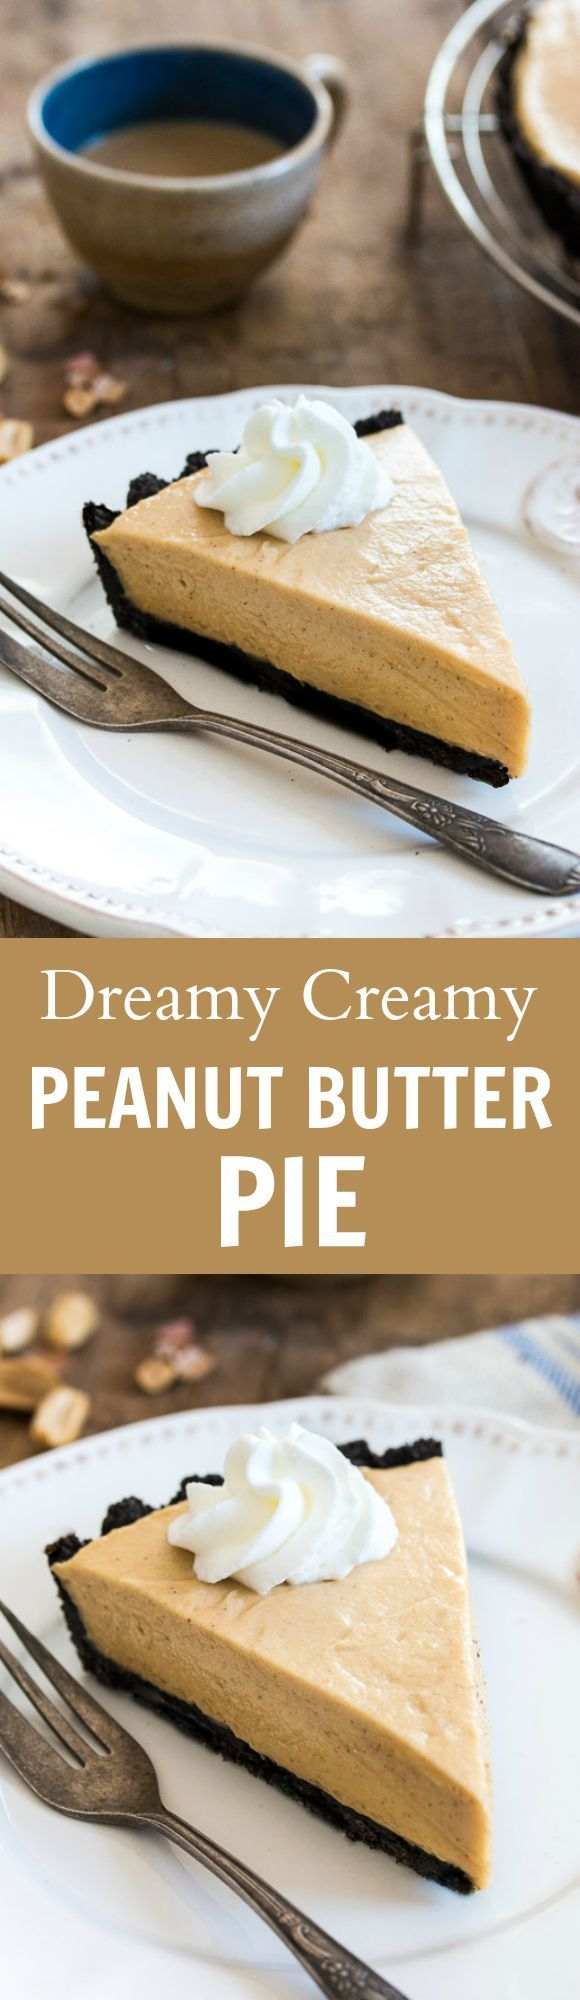 Dreamy, creamy classic peanut butter pie made of chocolate cookie crust and a fluffy peanut butter mousse filling.